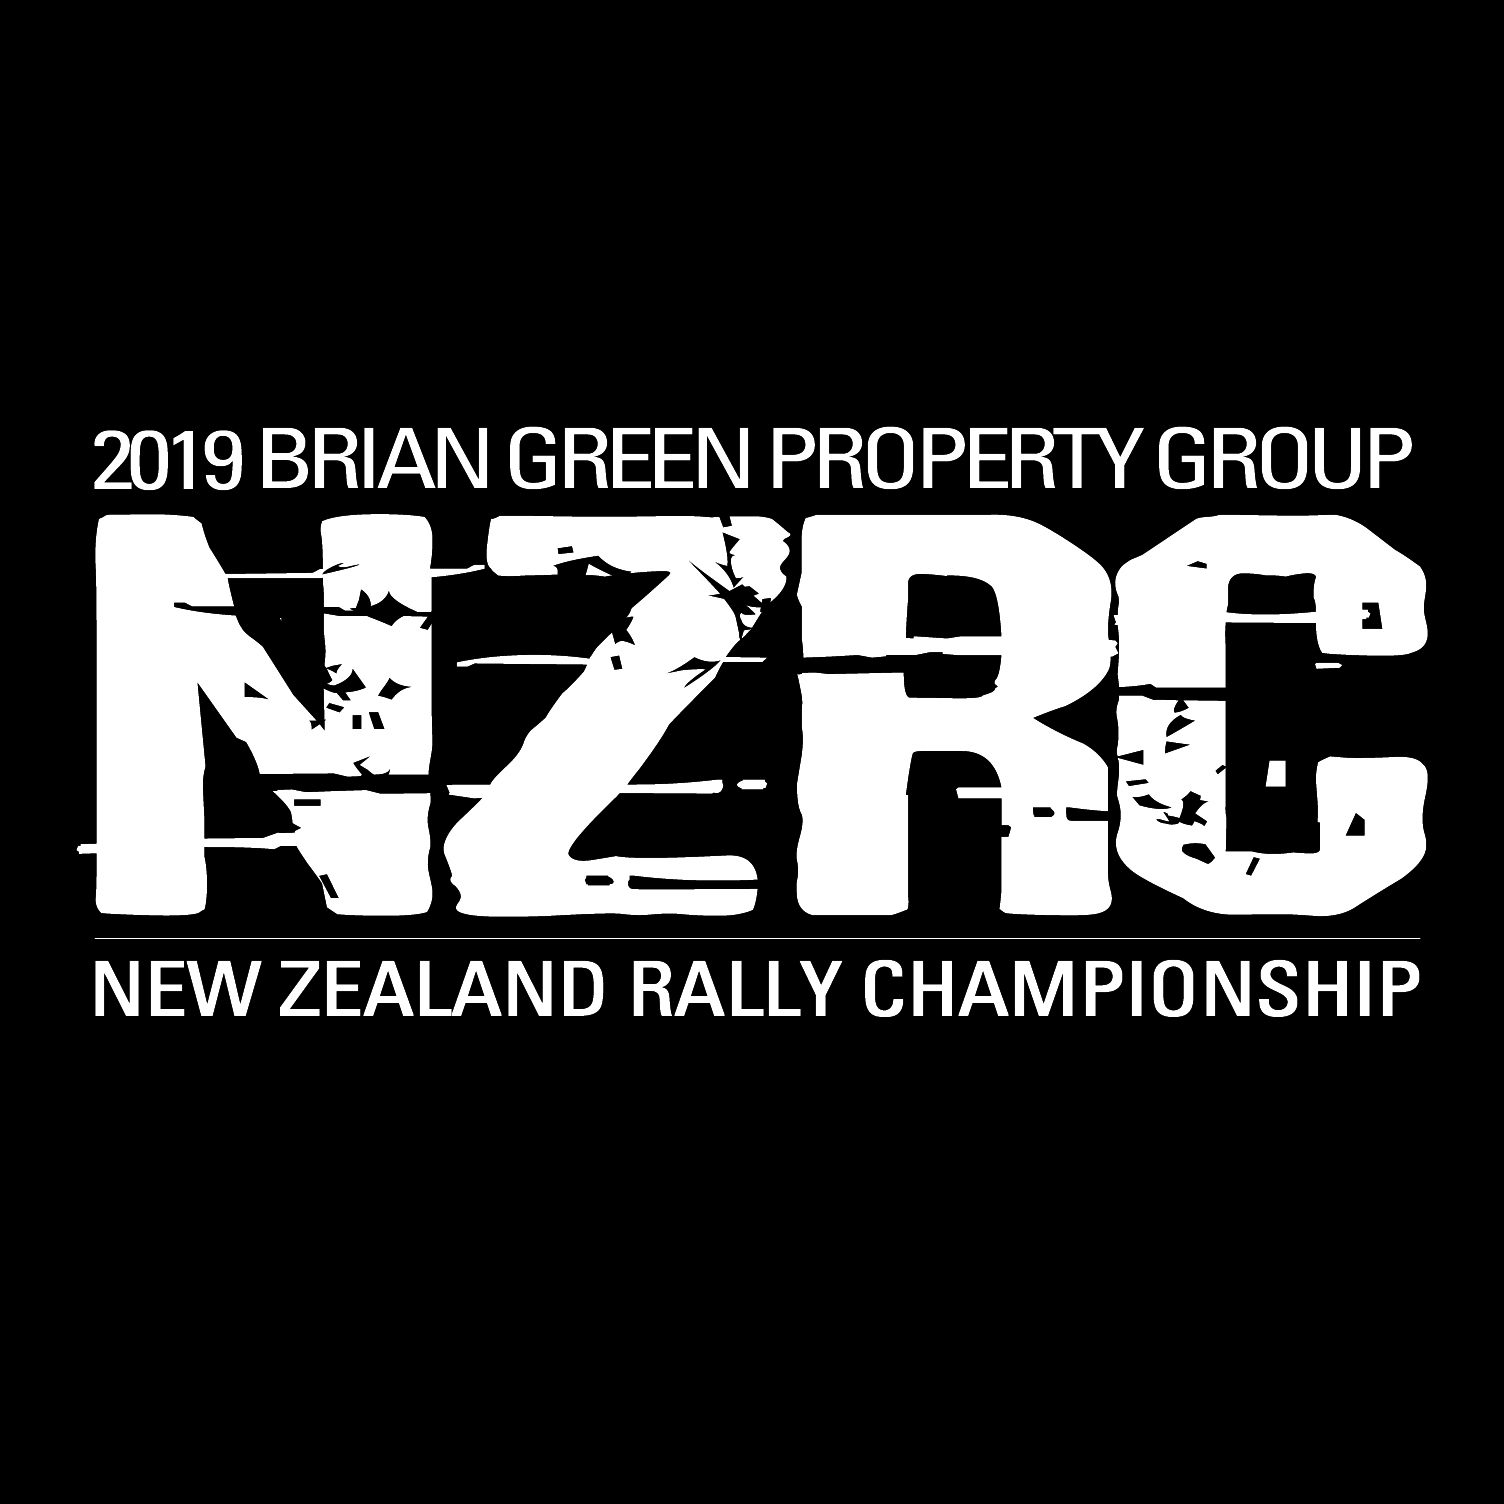 Hugely competitive 2019 NZRC season opens at Otago | :: Brian Green Property Group New Zealand Rally Championship ::